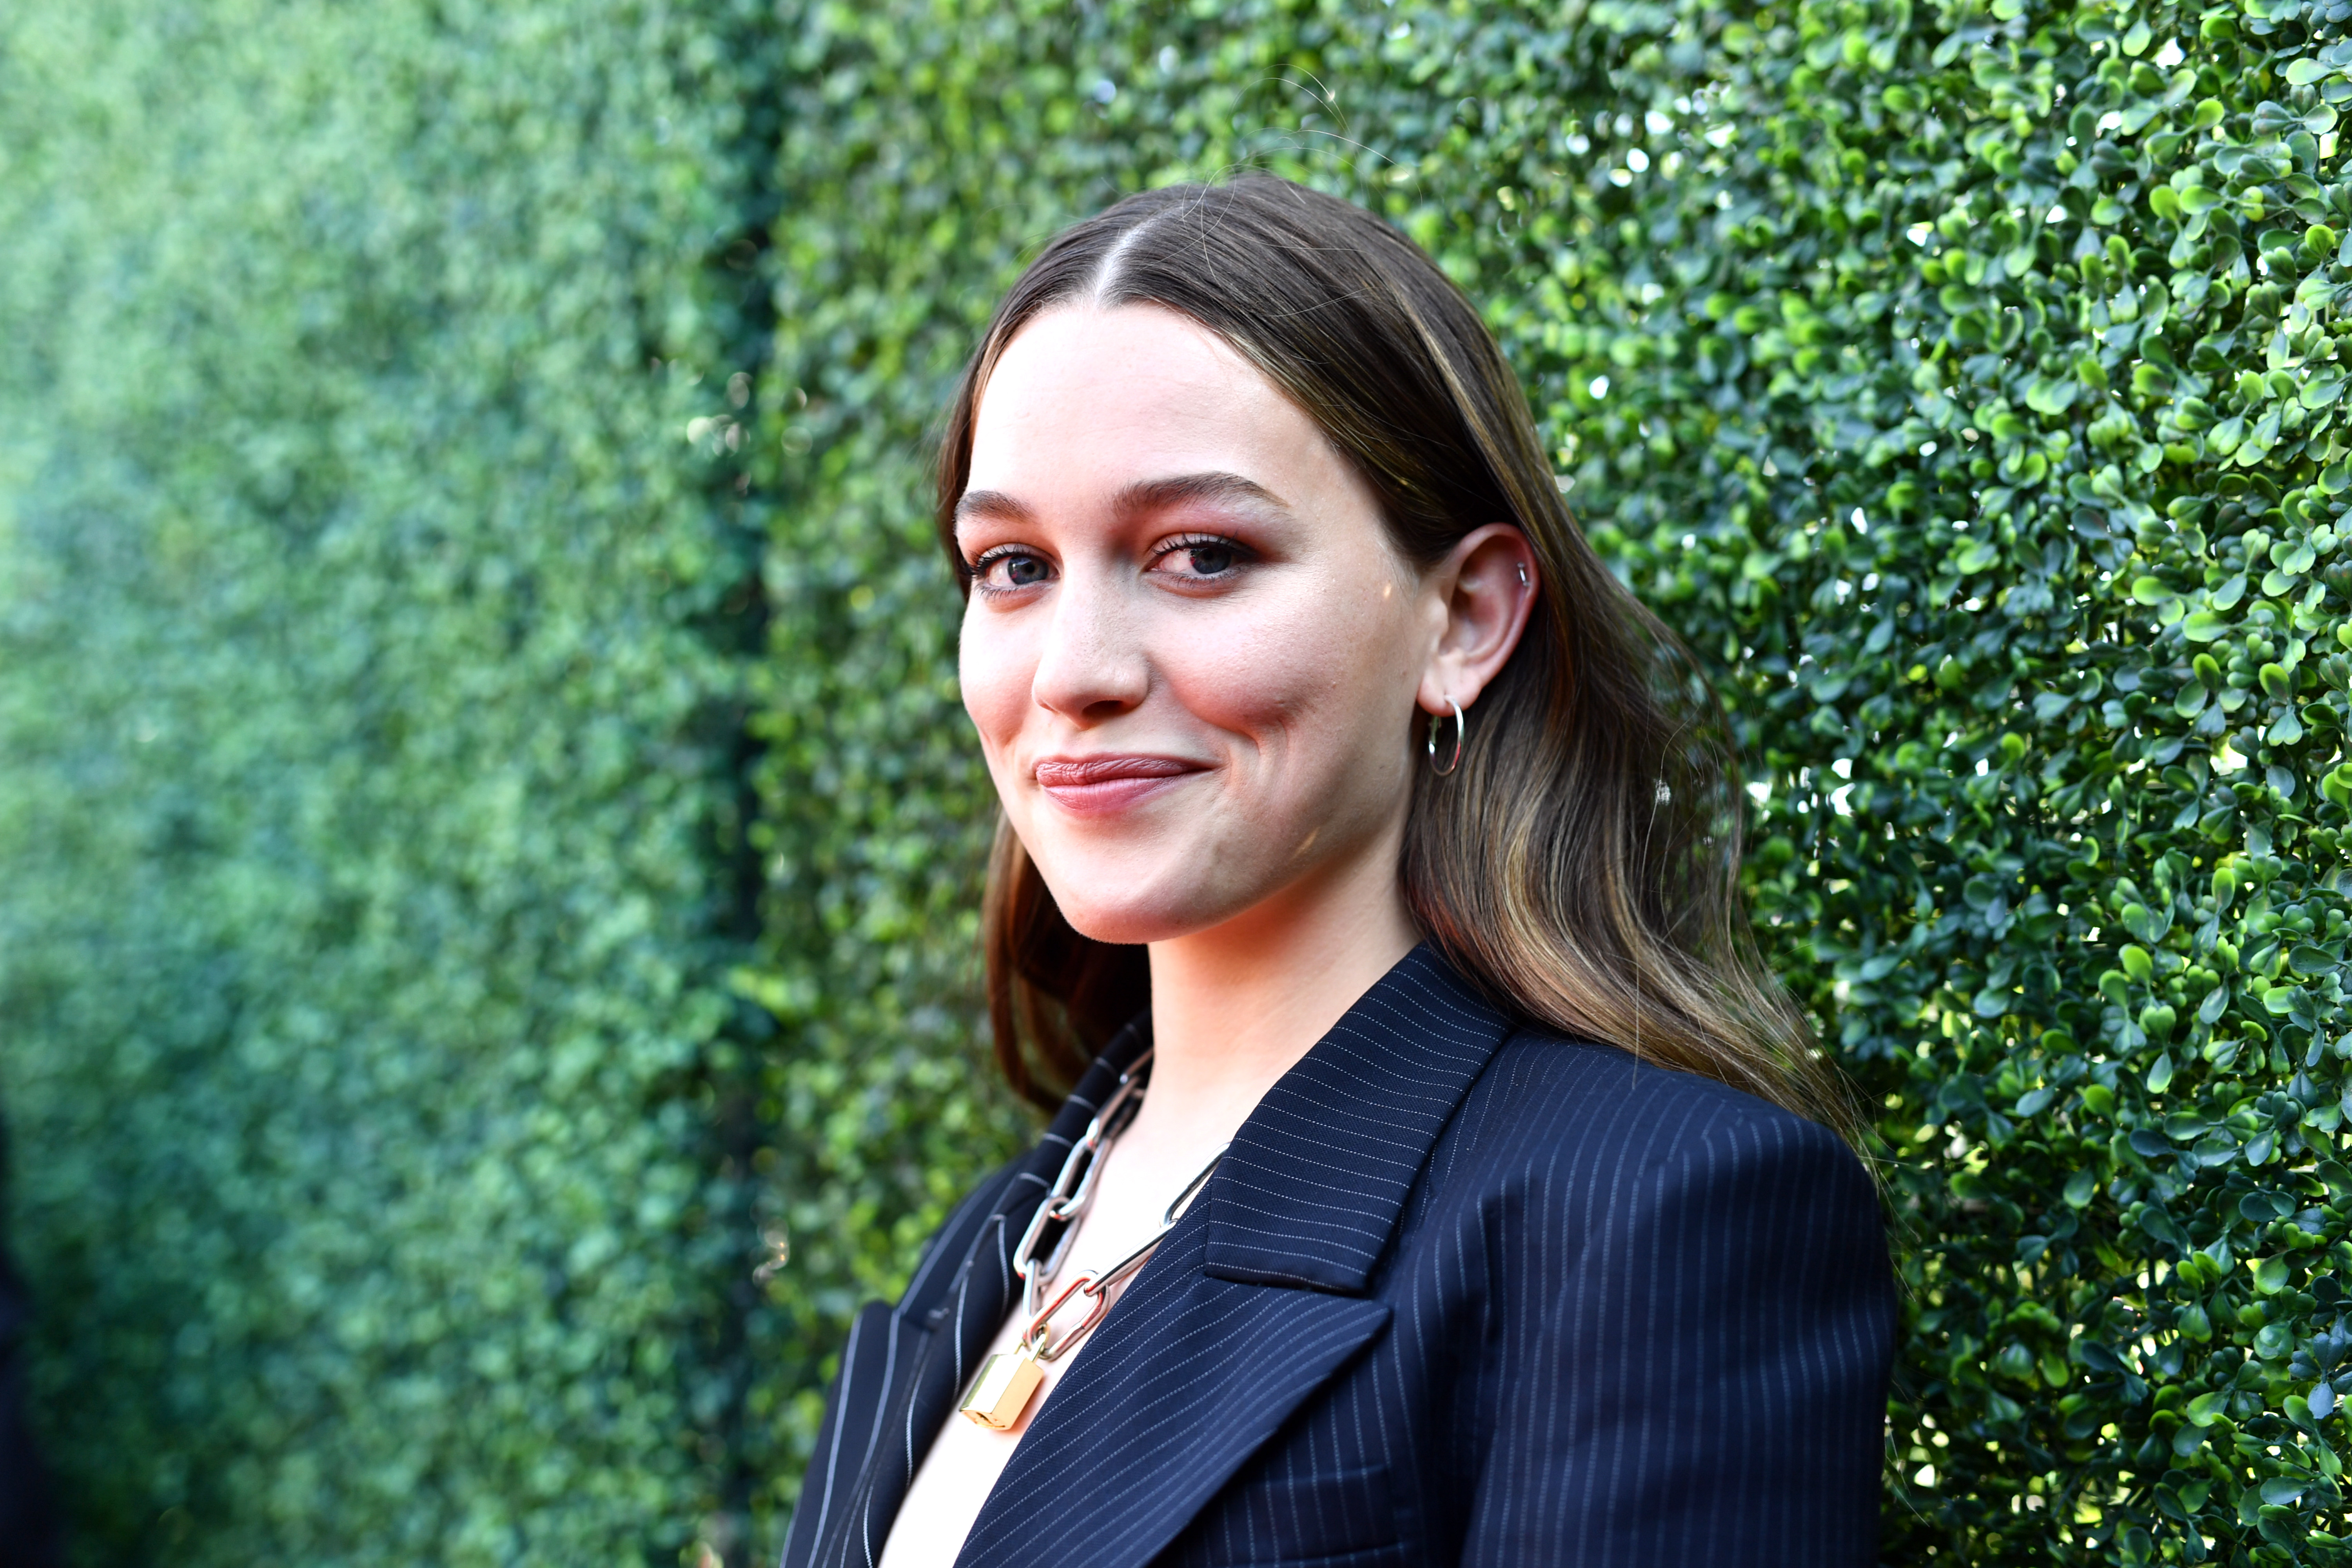 Hill House S Victoria Pedretti Returning For Bly Manor